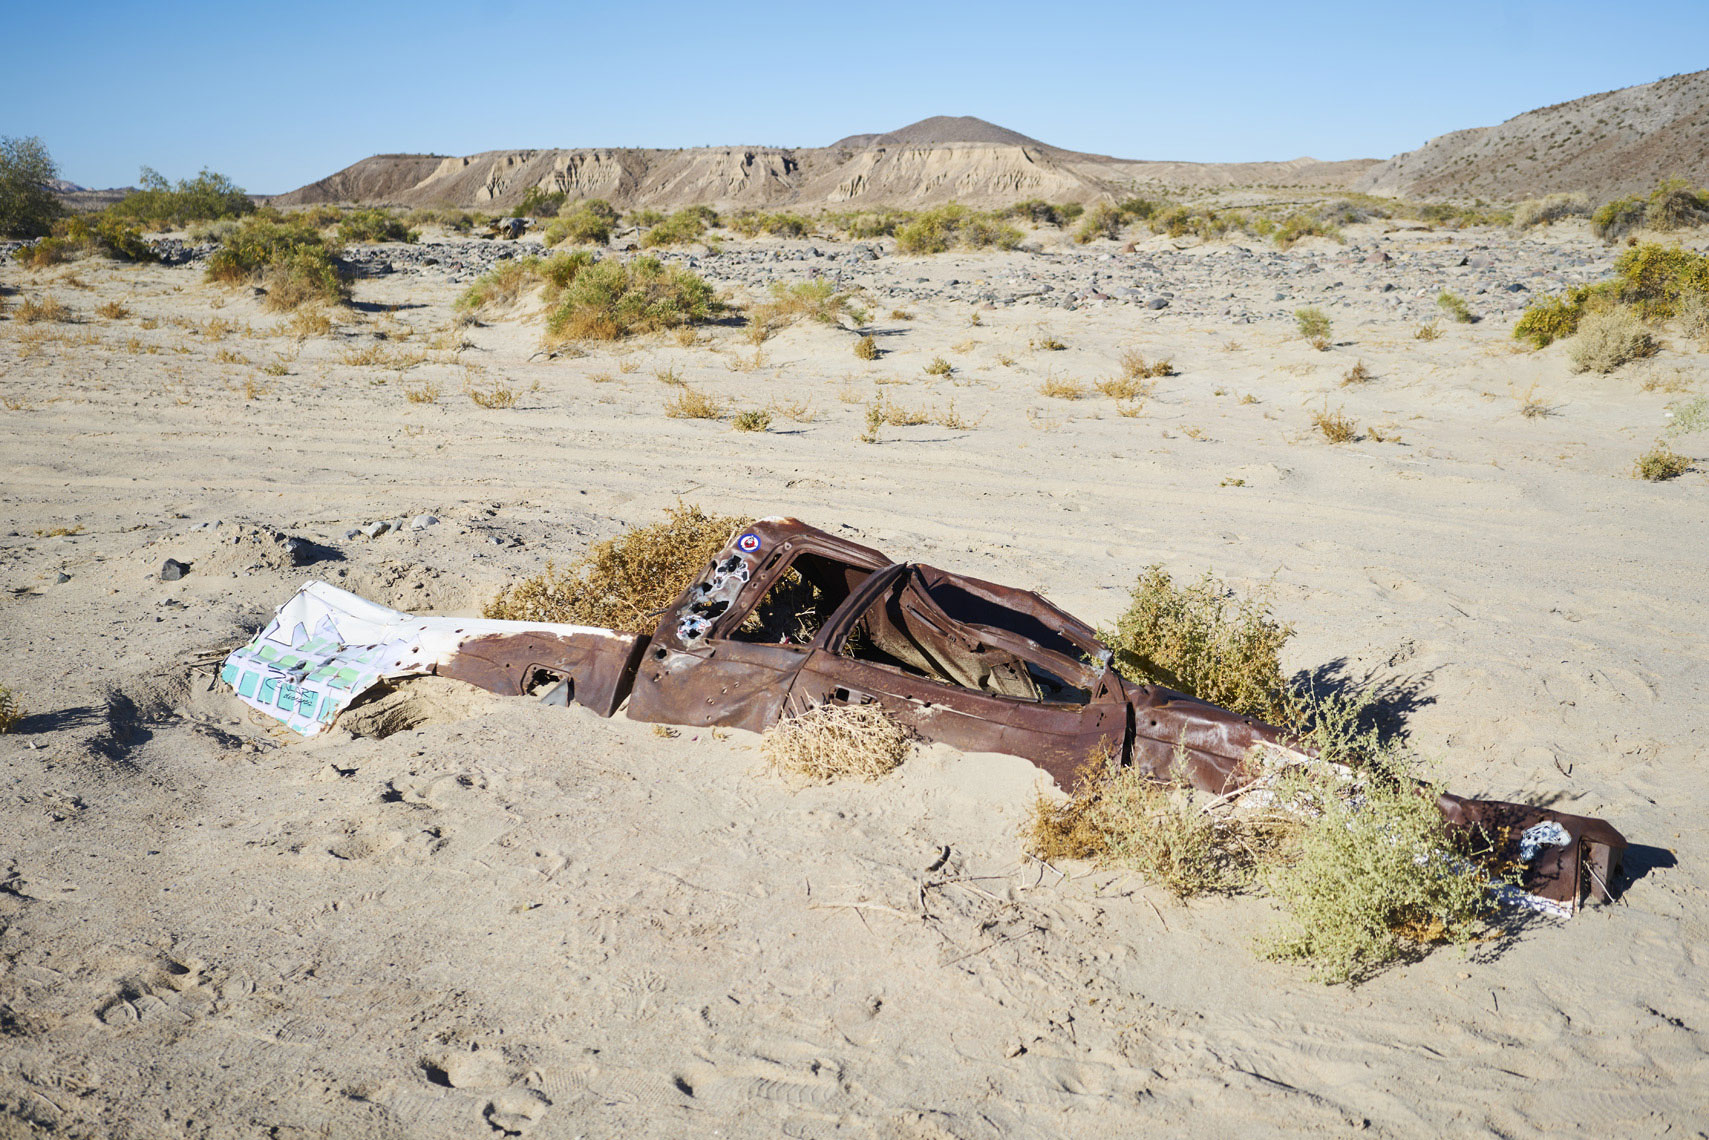 Pickup truck buried by sand in a wash near afton canyon in mojave national preserve Sean Dagen Photography